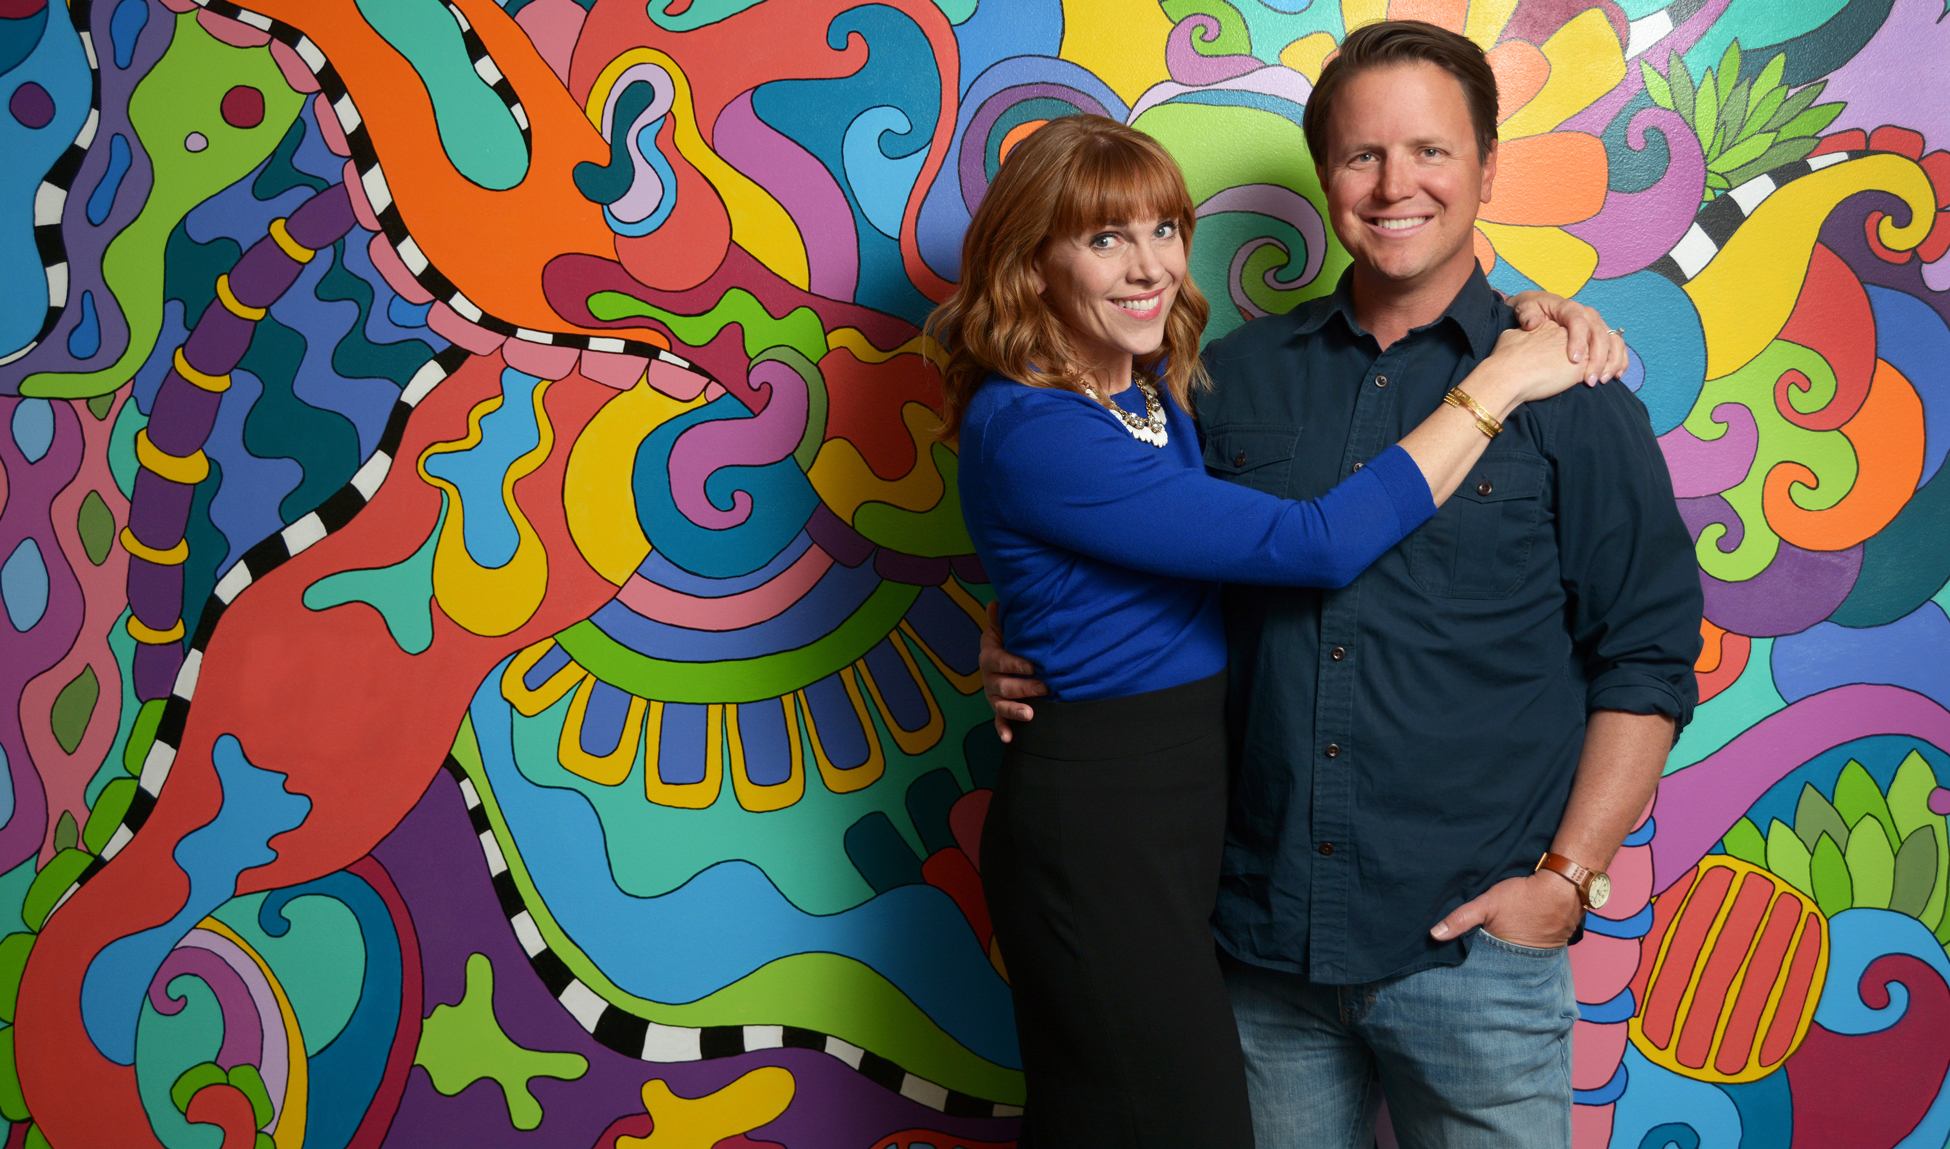 Nate Quigley, CEO of Chatbooks. Pictured with co-founder Vanessa Quigley